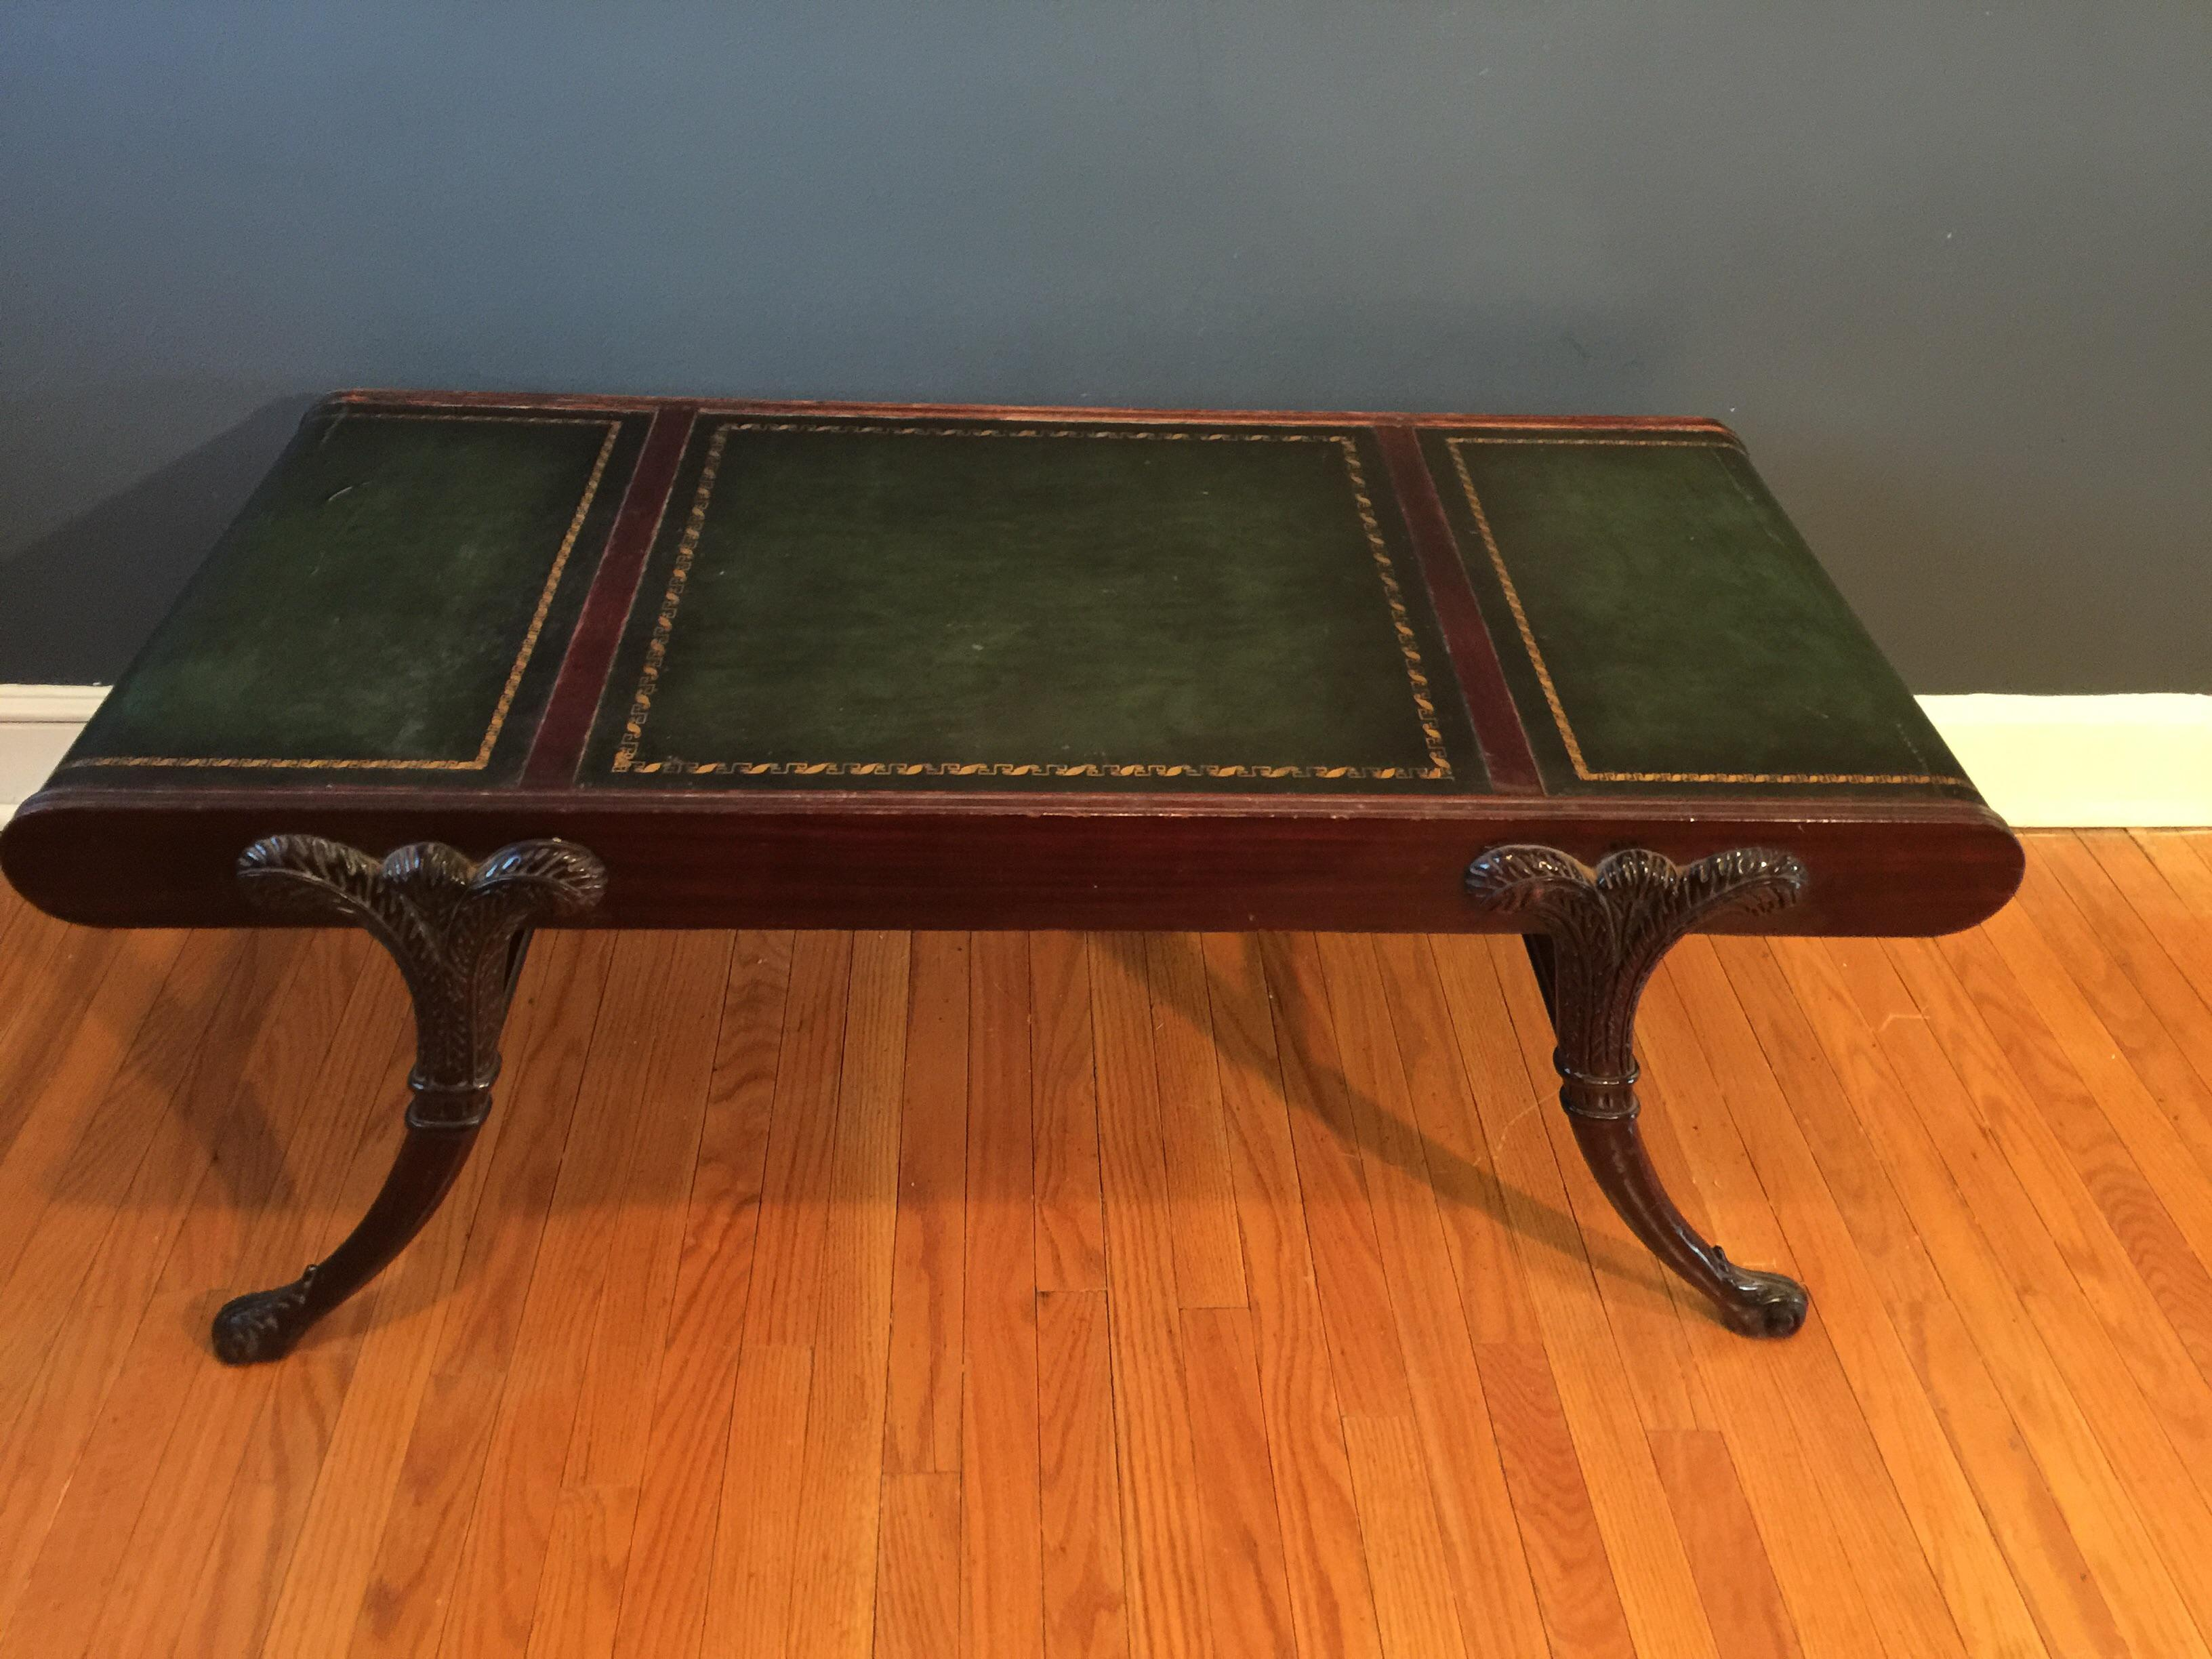 Merveilleux Traditional Mahogany Leather Top Coffee Table For Sale   Image 3 Of 9